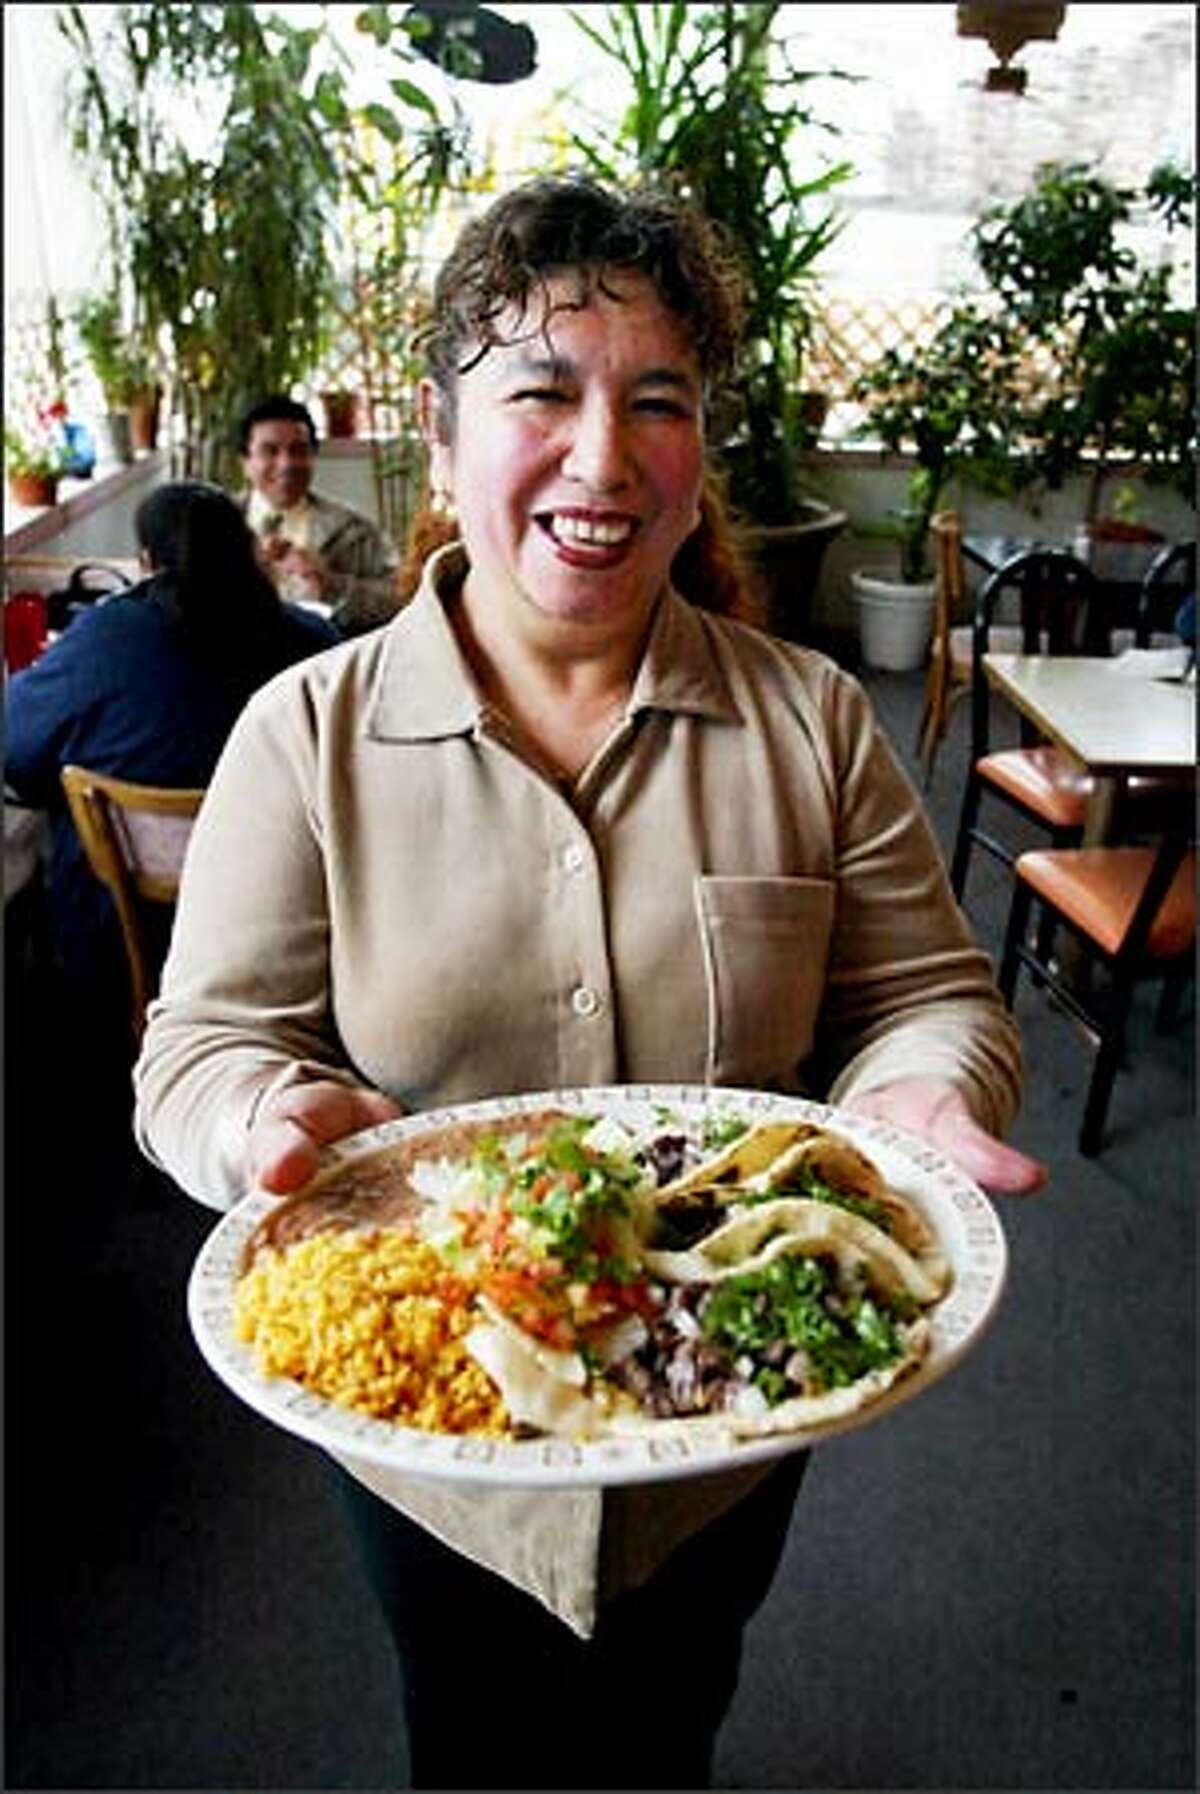 Elvira Lohman, owner of Coliman Restaurant & Taqueria in Georgetown, shows off one of her signature dishes, a steaming plateful of Tacos de Carne Asada.